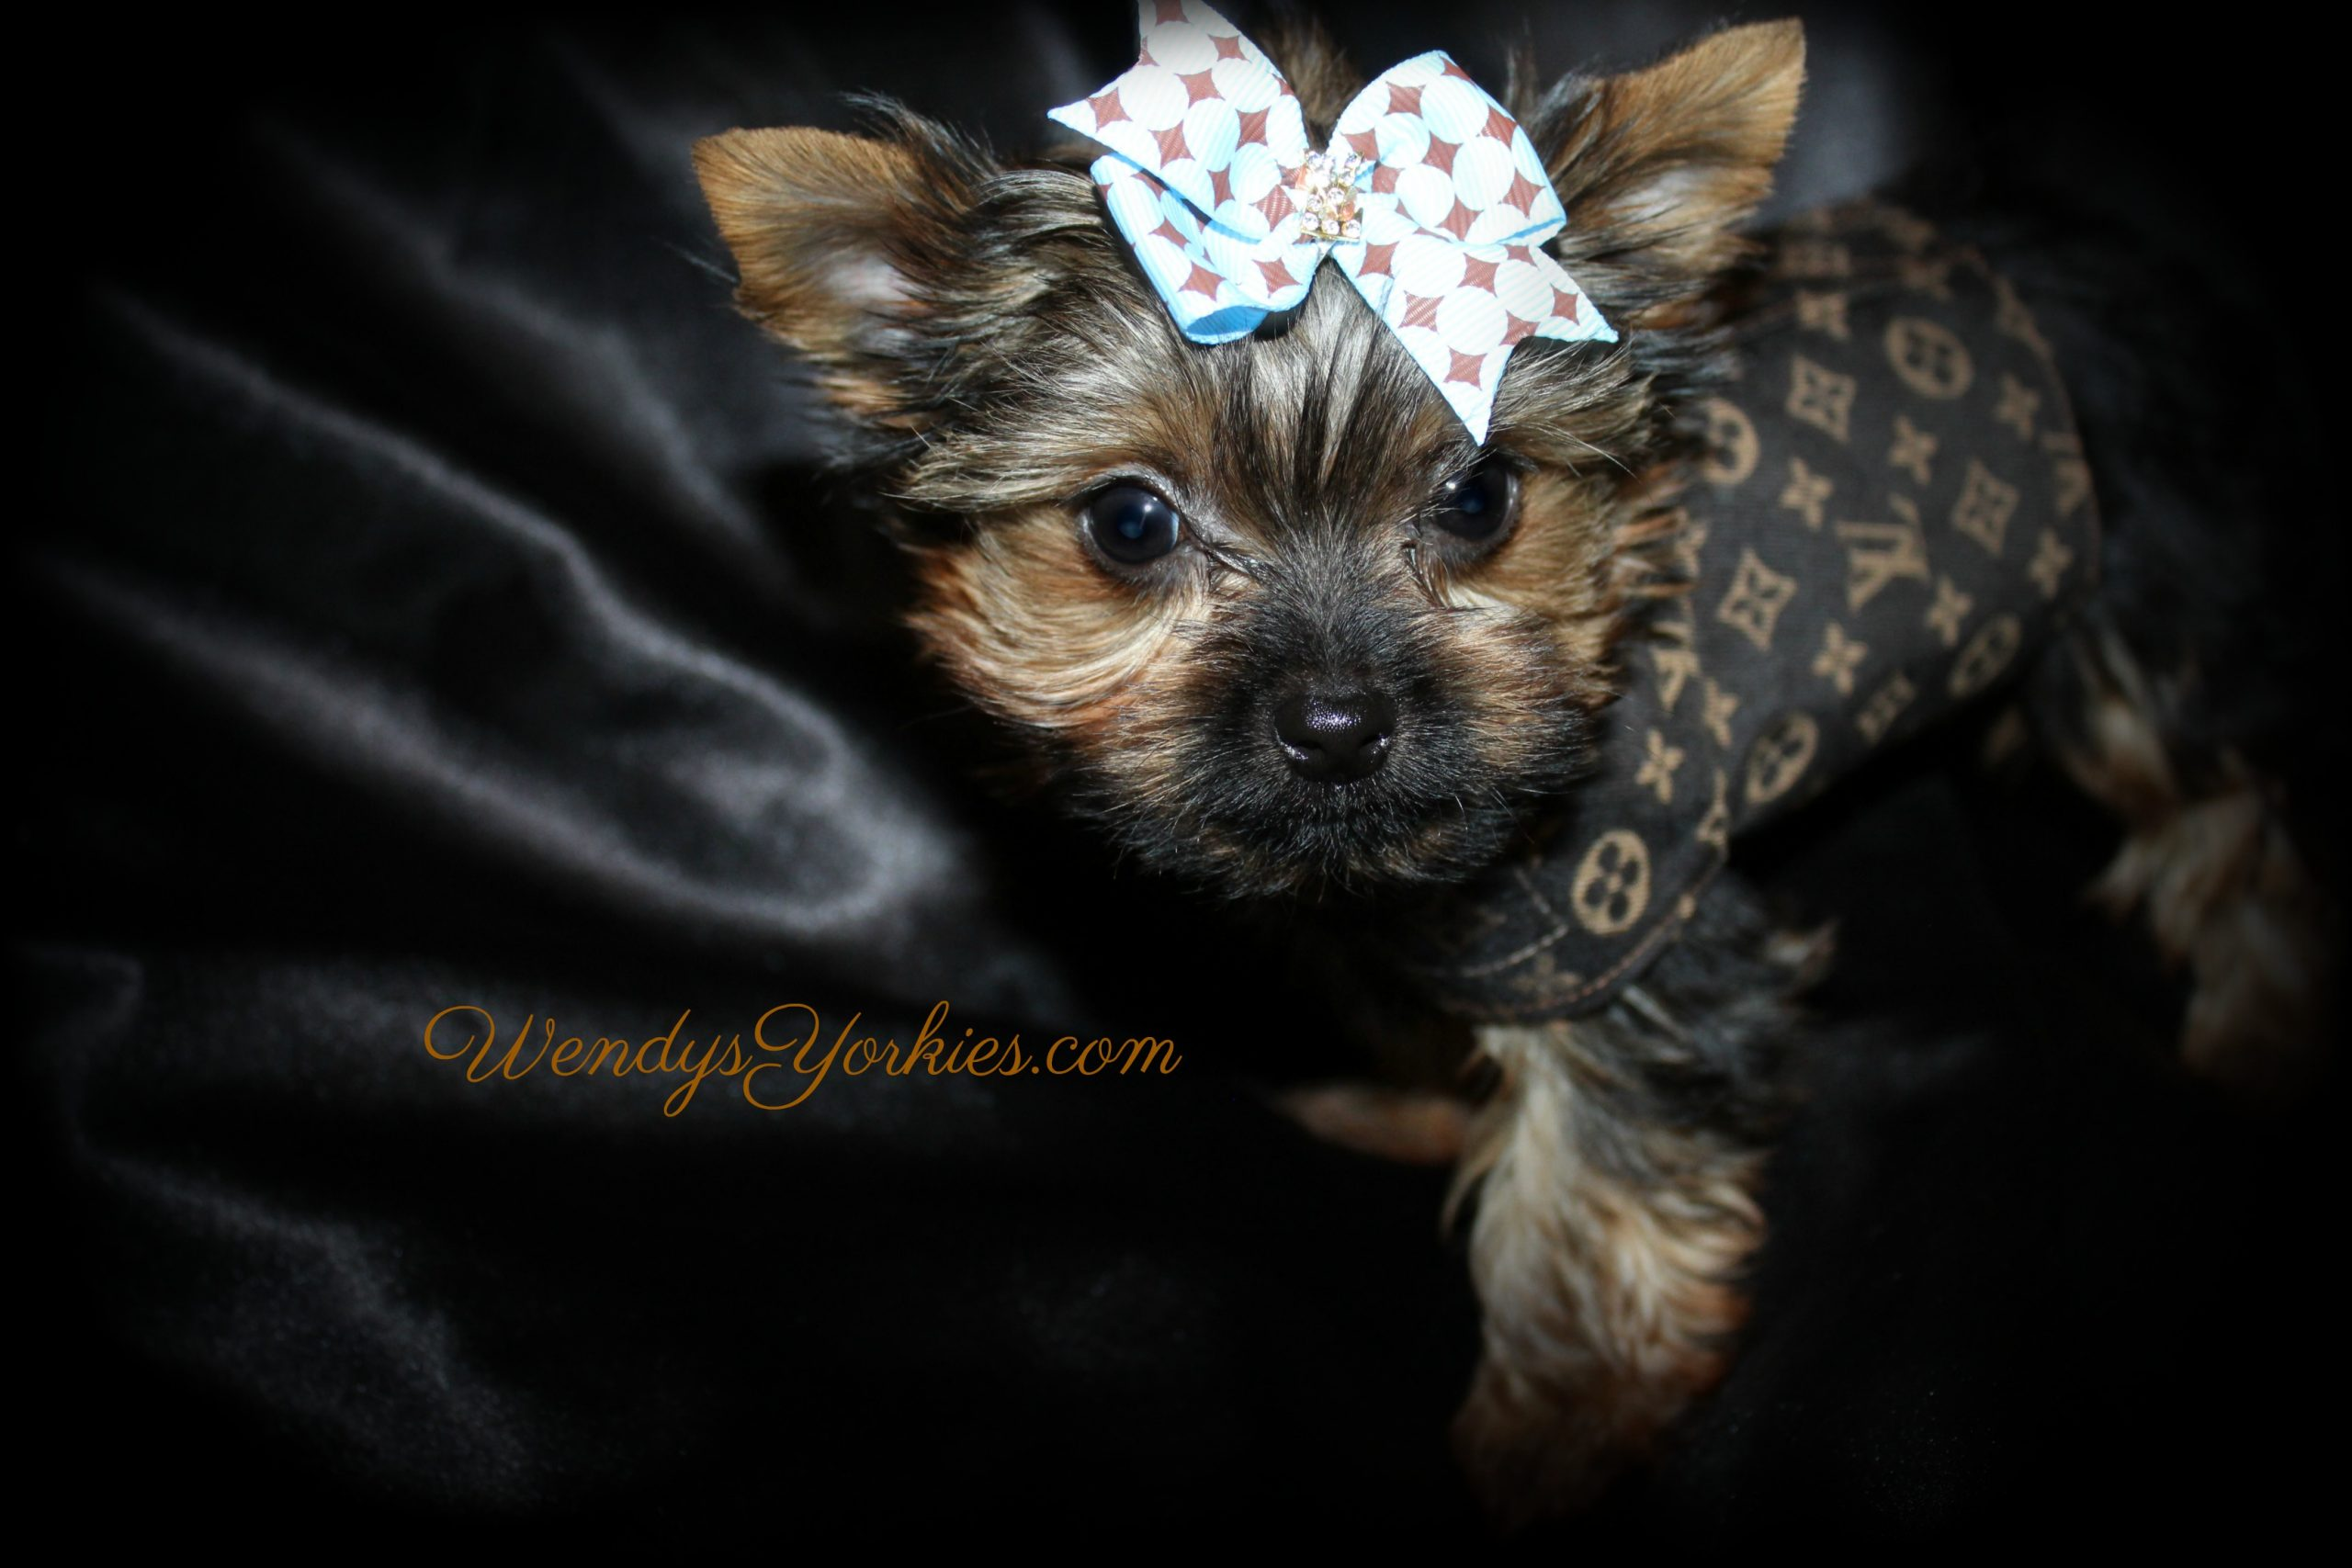 Tiny Yorkie puppy for sale in Texas, Chloe m1, WendysYorkies.com